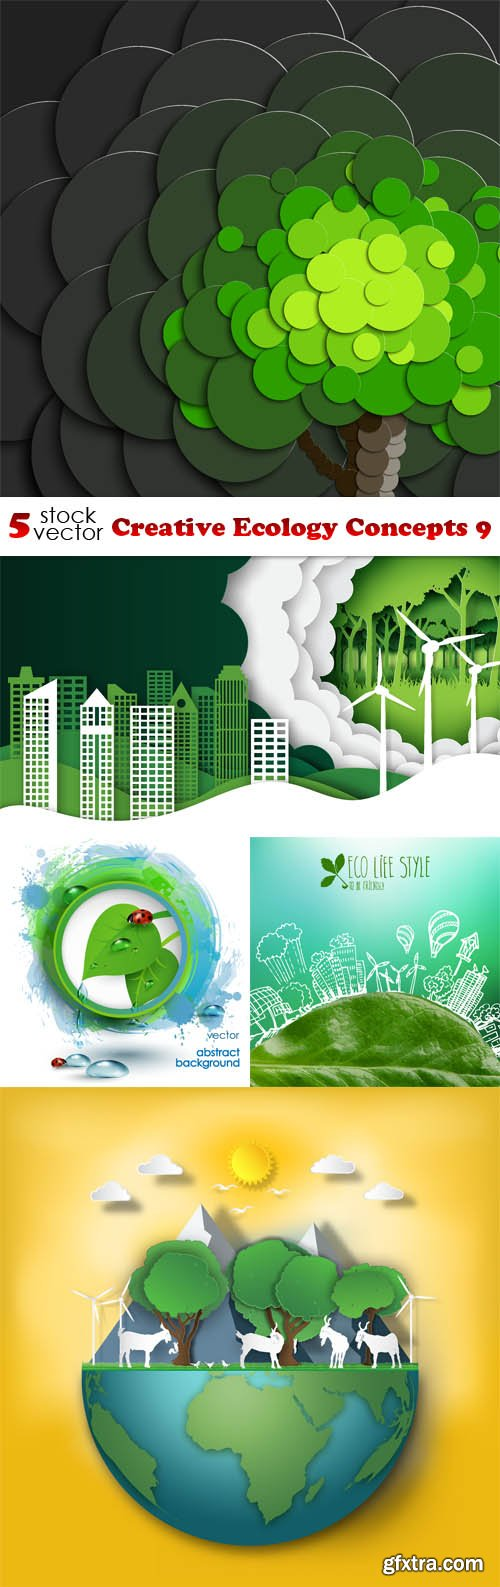 Vectors - Creative Ecology Concepts 9